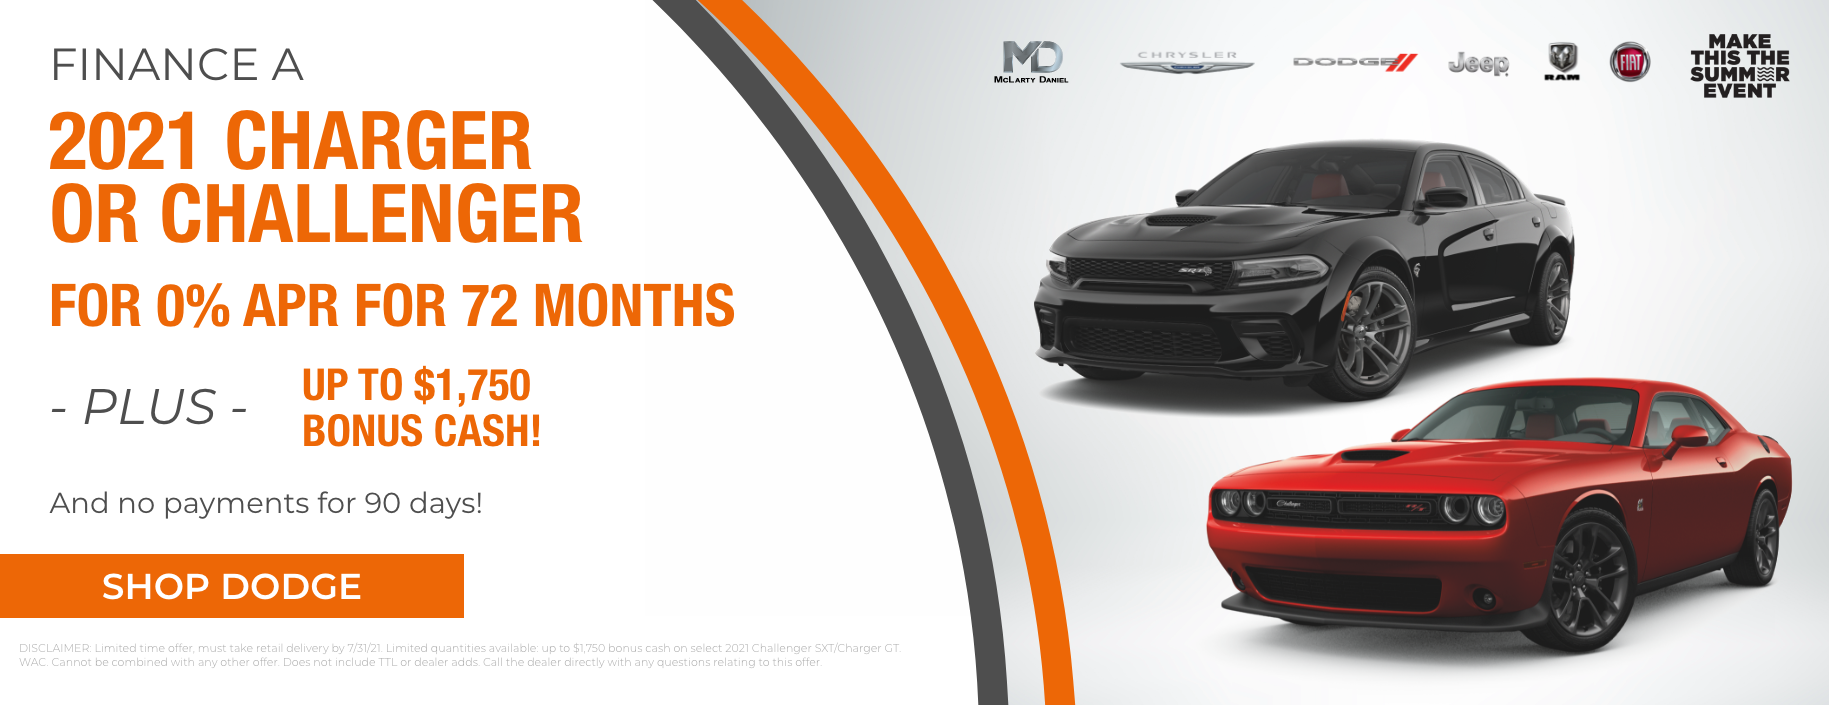 Finance a 2021 Charger or Challenge for 0% APR for 72 months plus up to $1,750 bonus cash! 90 days to first payment!